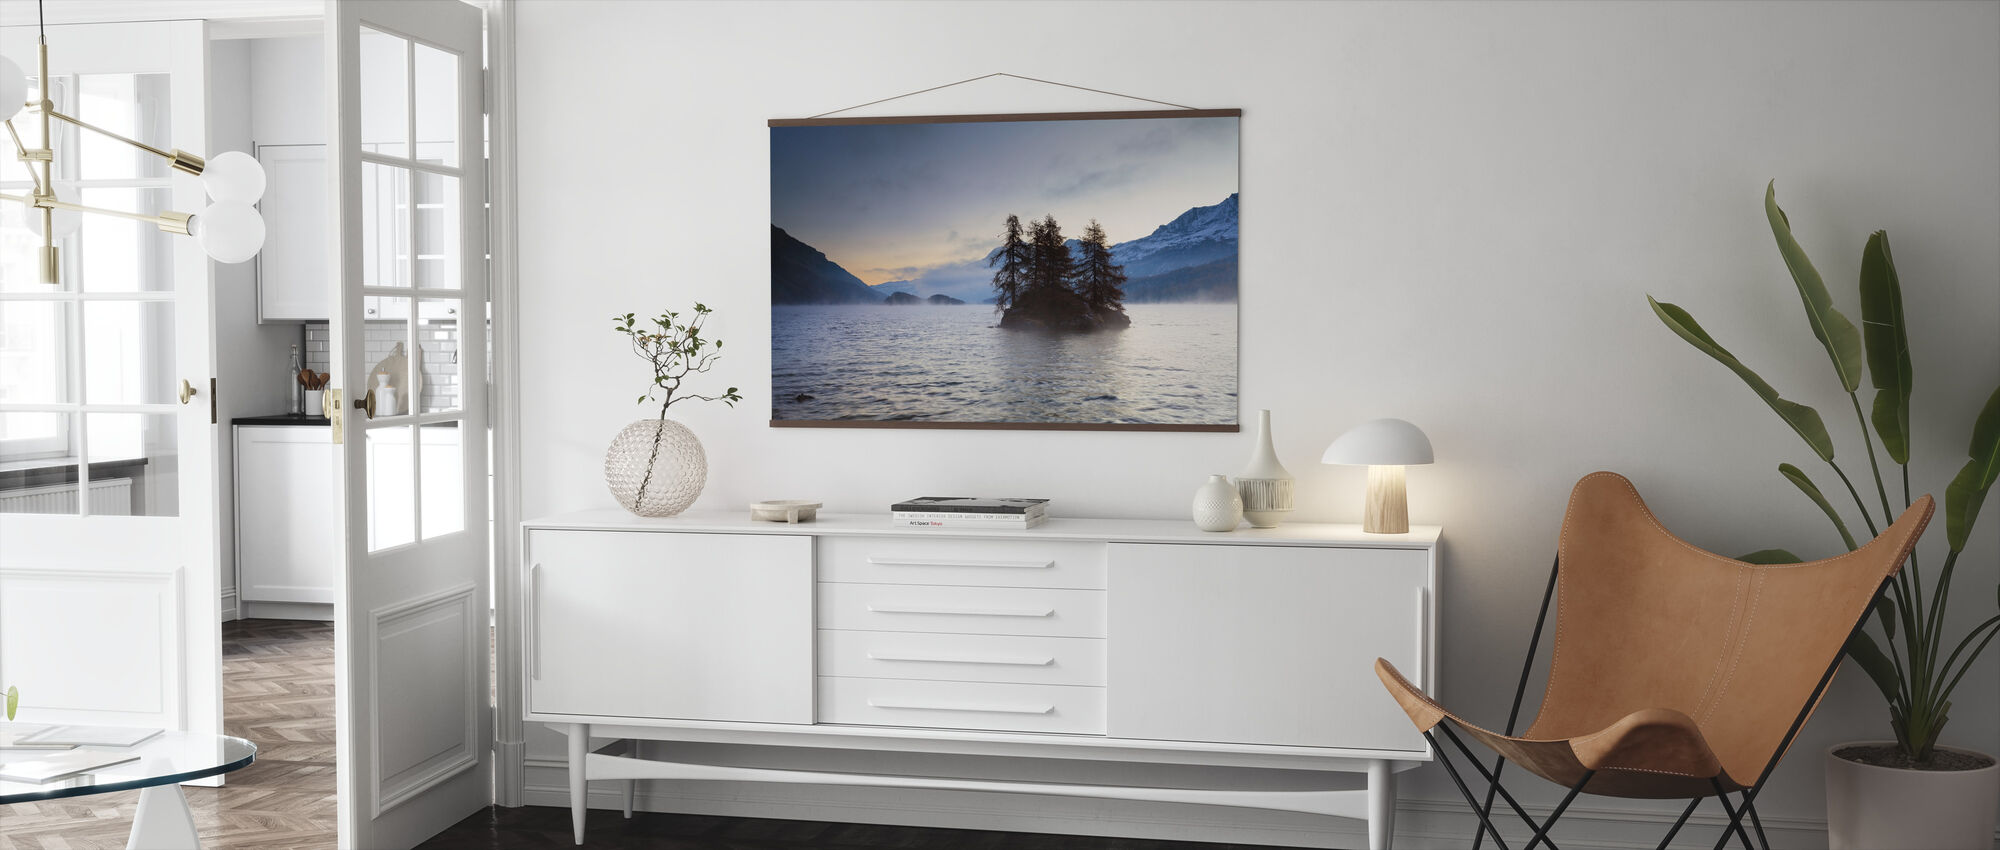 Island in Lake Sils - Poster - Living Room